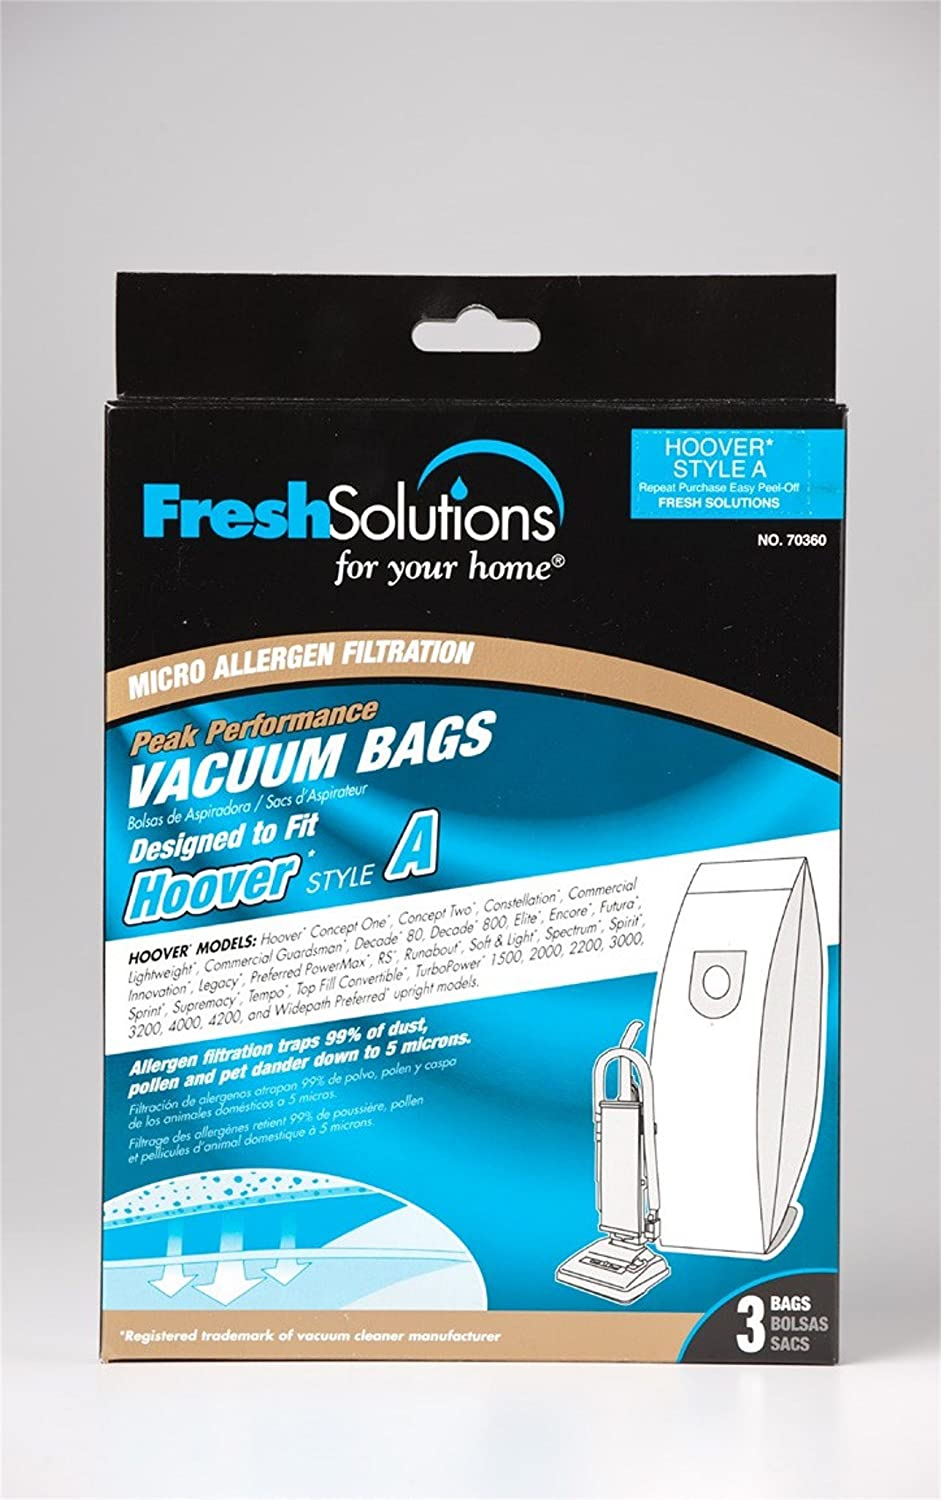 Amazon.com : Hoover 70360 Hoover A / Bissell Style 2, Micro Filtration Vacuum Bags, Qty 3 : Household Vacuum Bags Upright : Garden & Outdoor